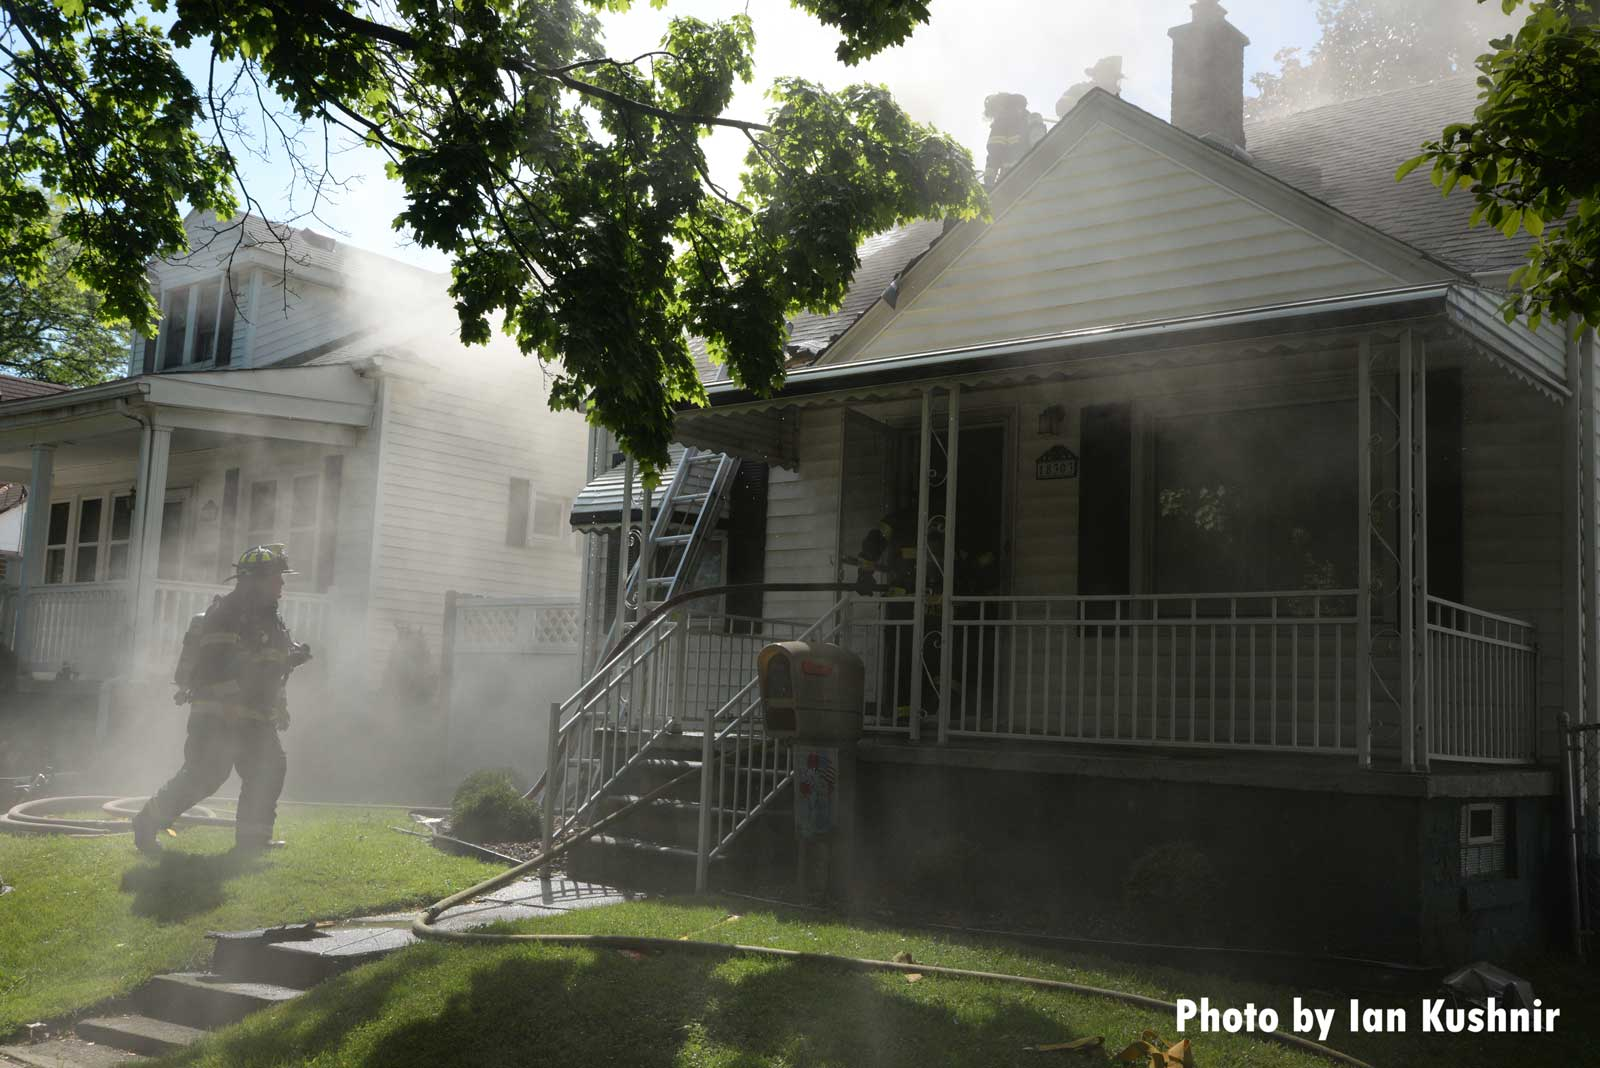 Another image of the house fire